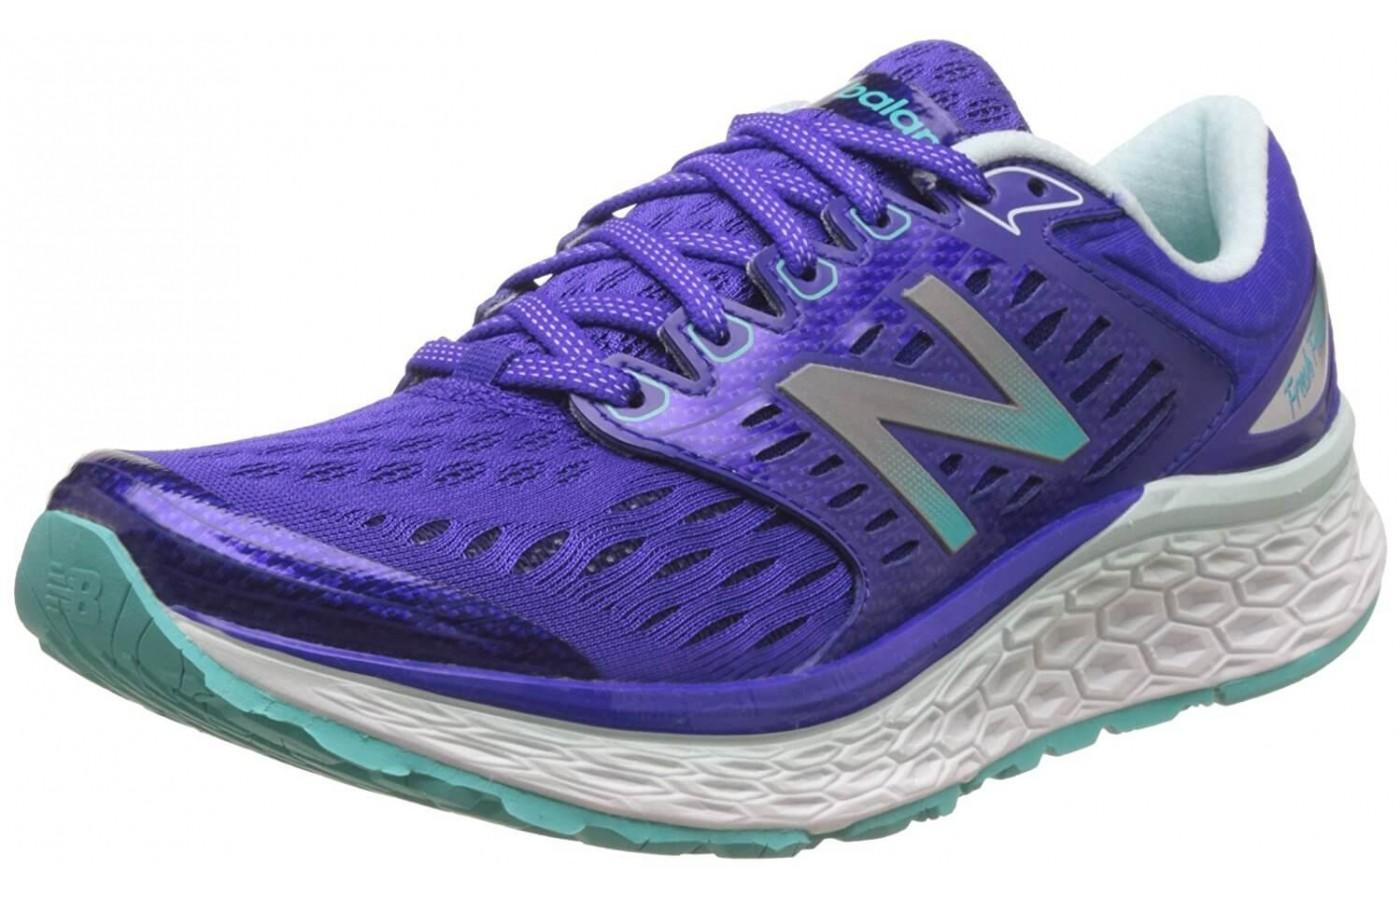 new product 489f0 a1bfa New Balance Fresh Foam 1080 v6 - Buy or Not in May 2019